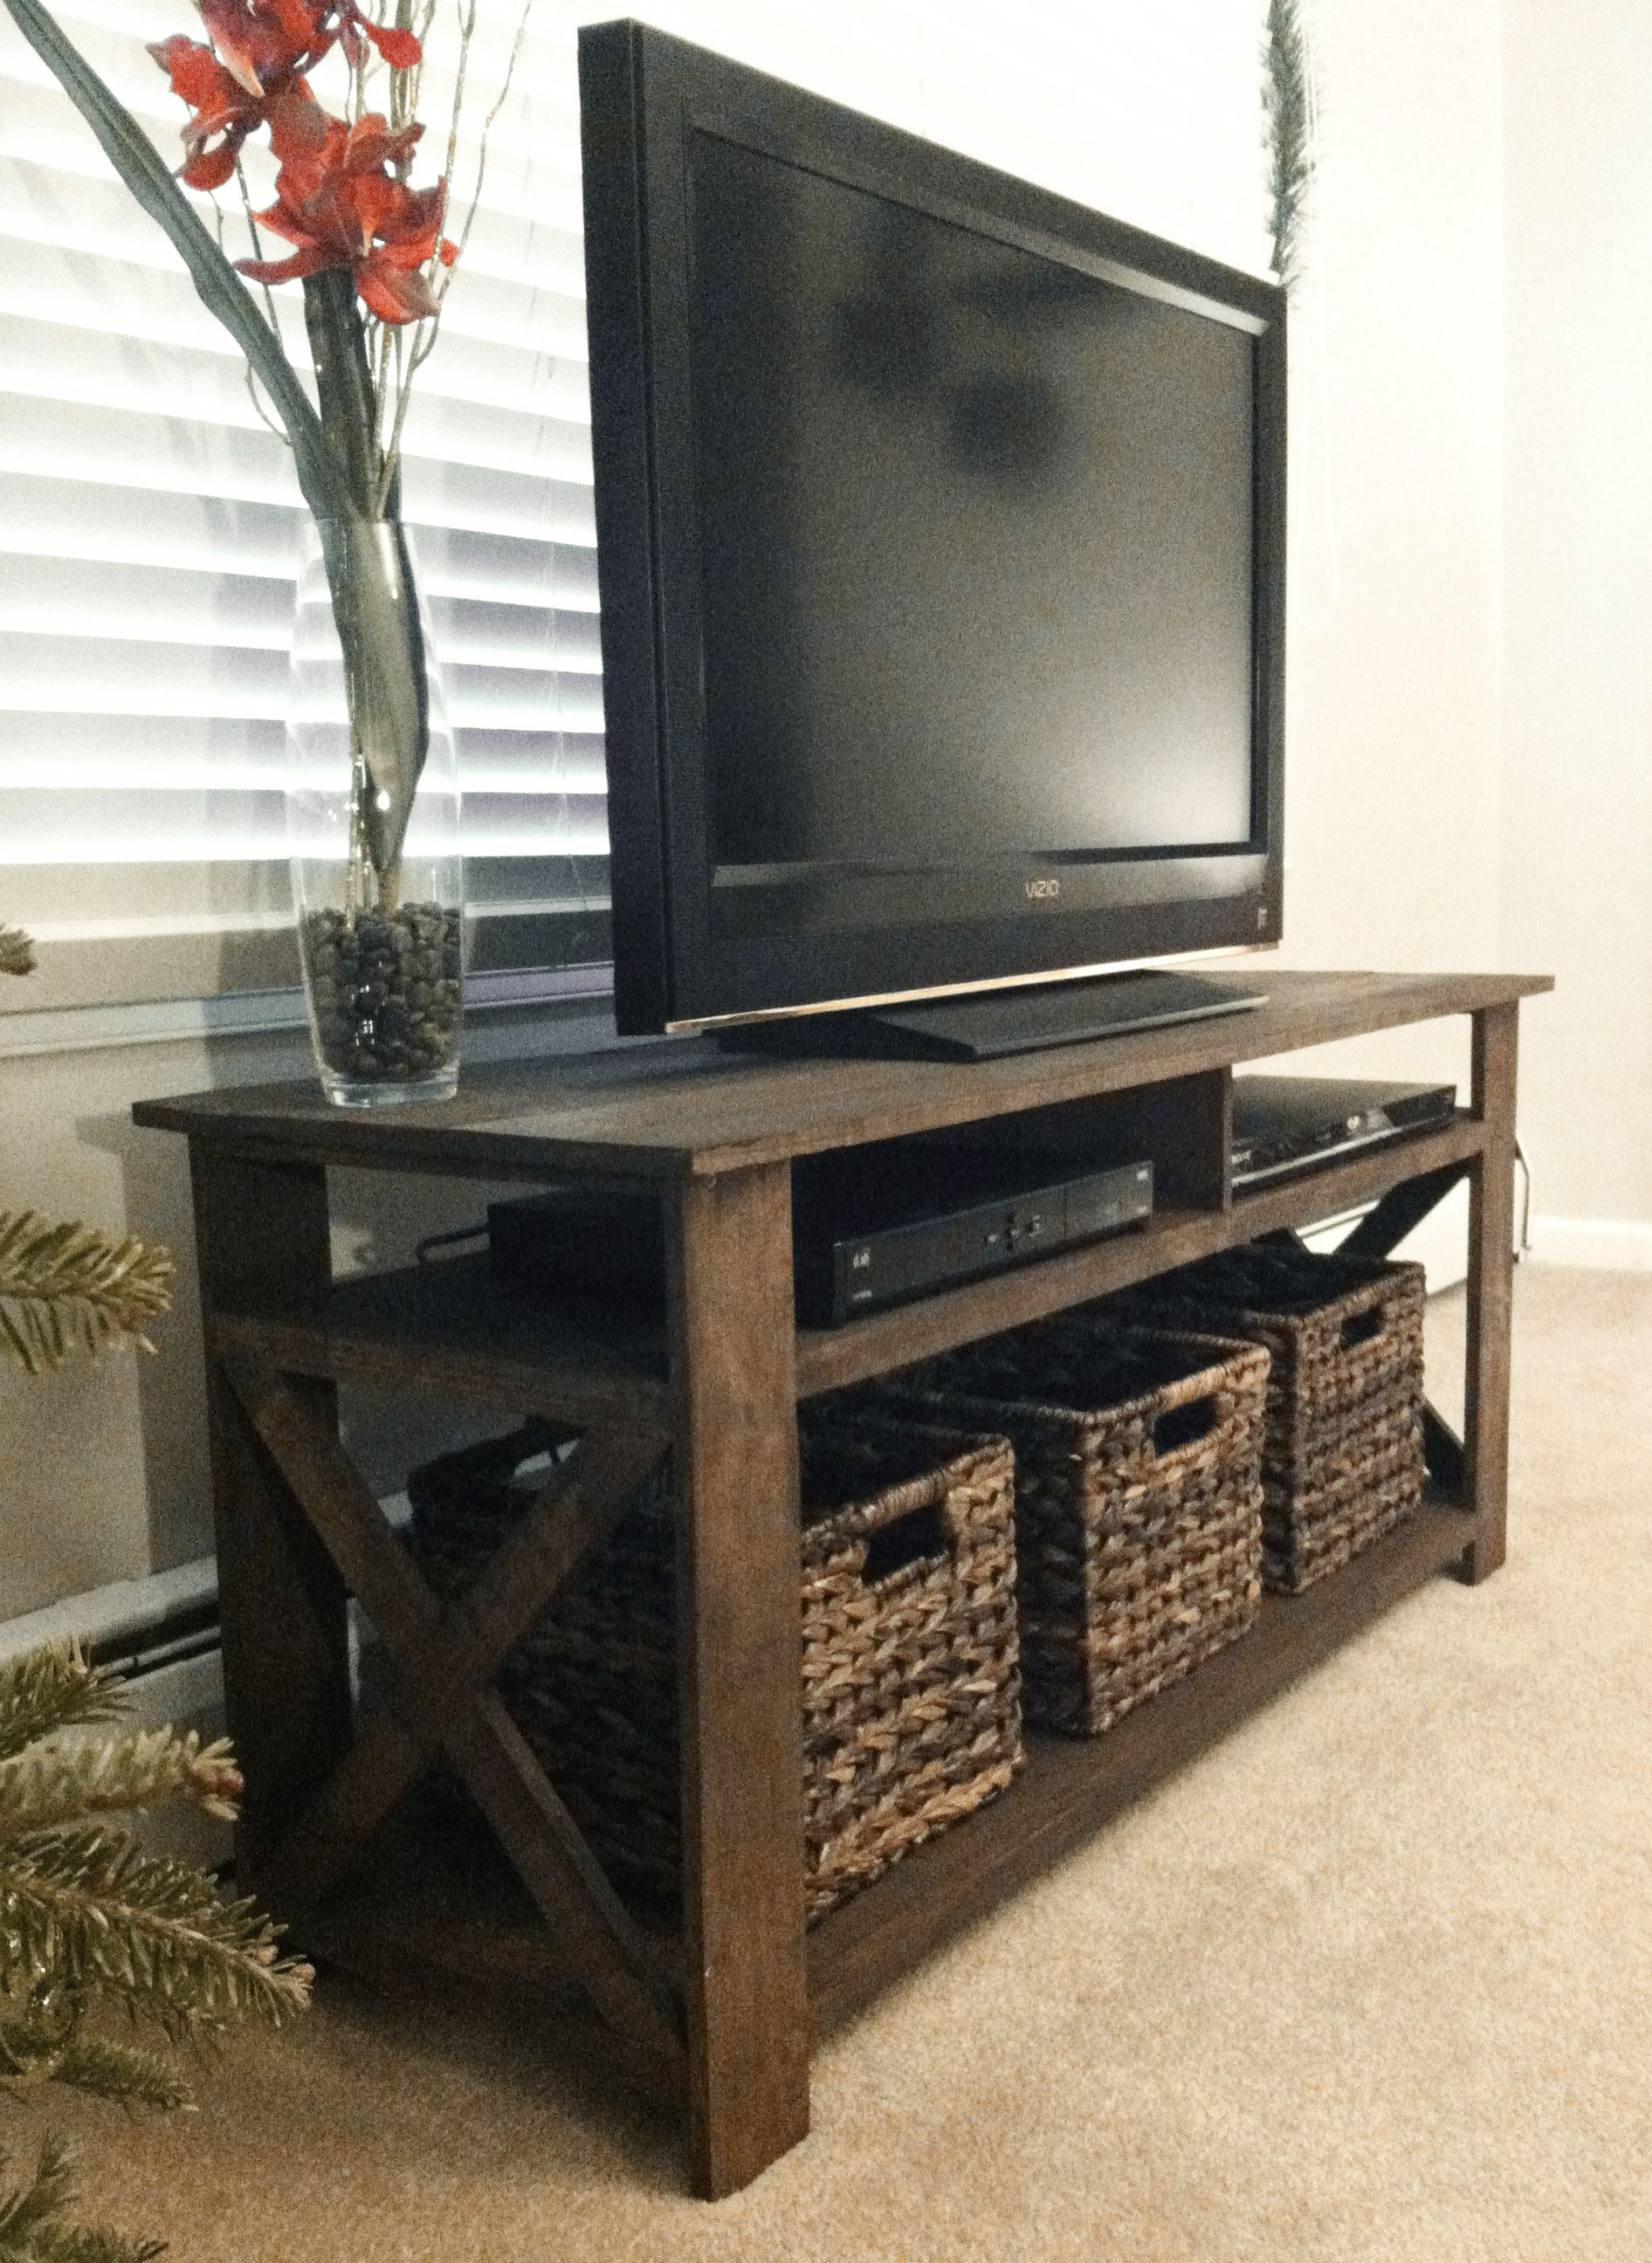 Superieur Muebles Diy Tv Stand, Crate Tv Stand, Tv Stand Decor, How To Decorate